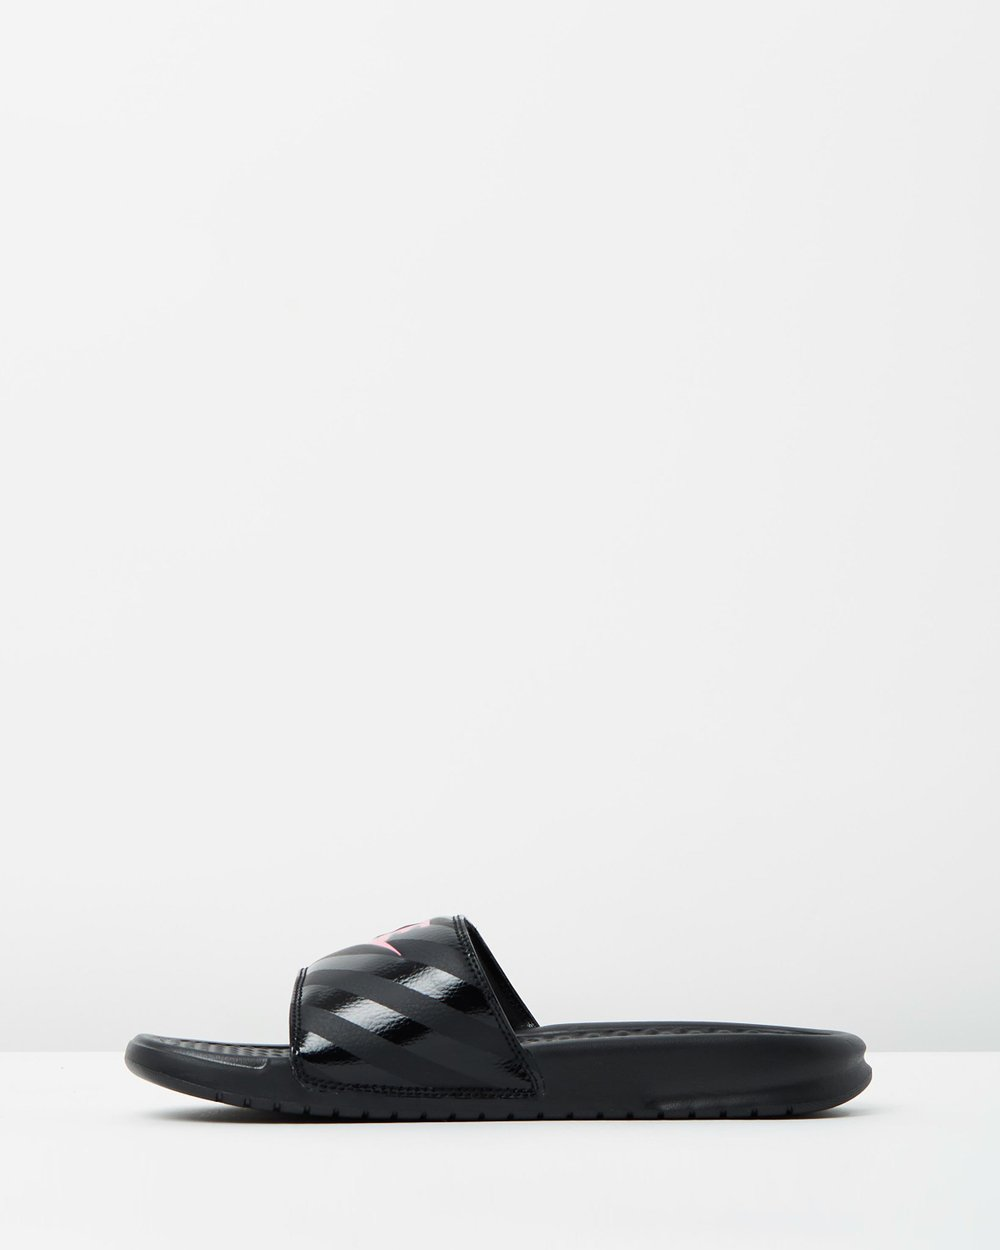 27a6940995e1 Benassi Just Do It Slides - Women s by Nike Online